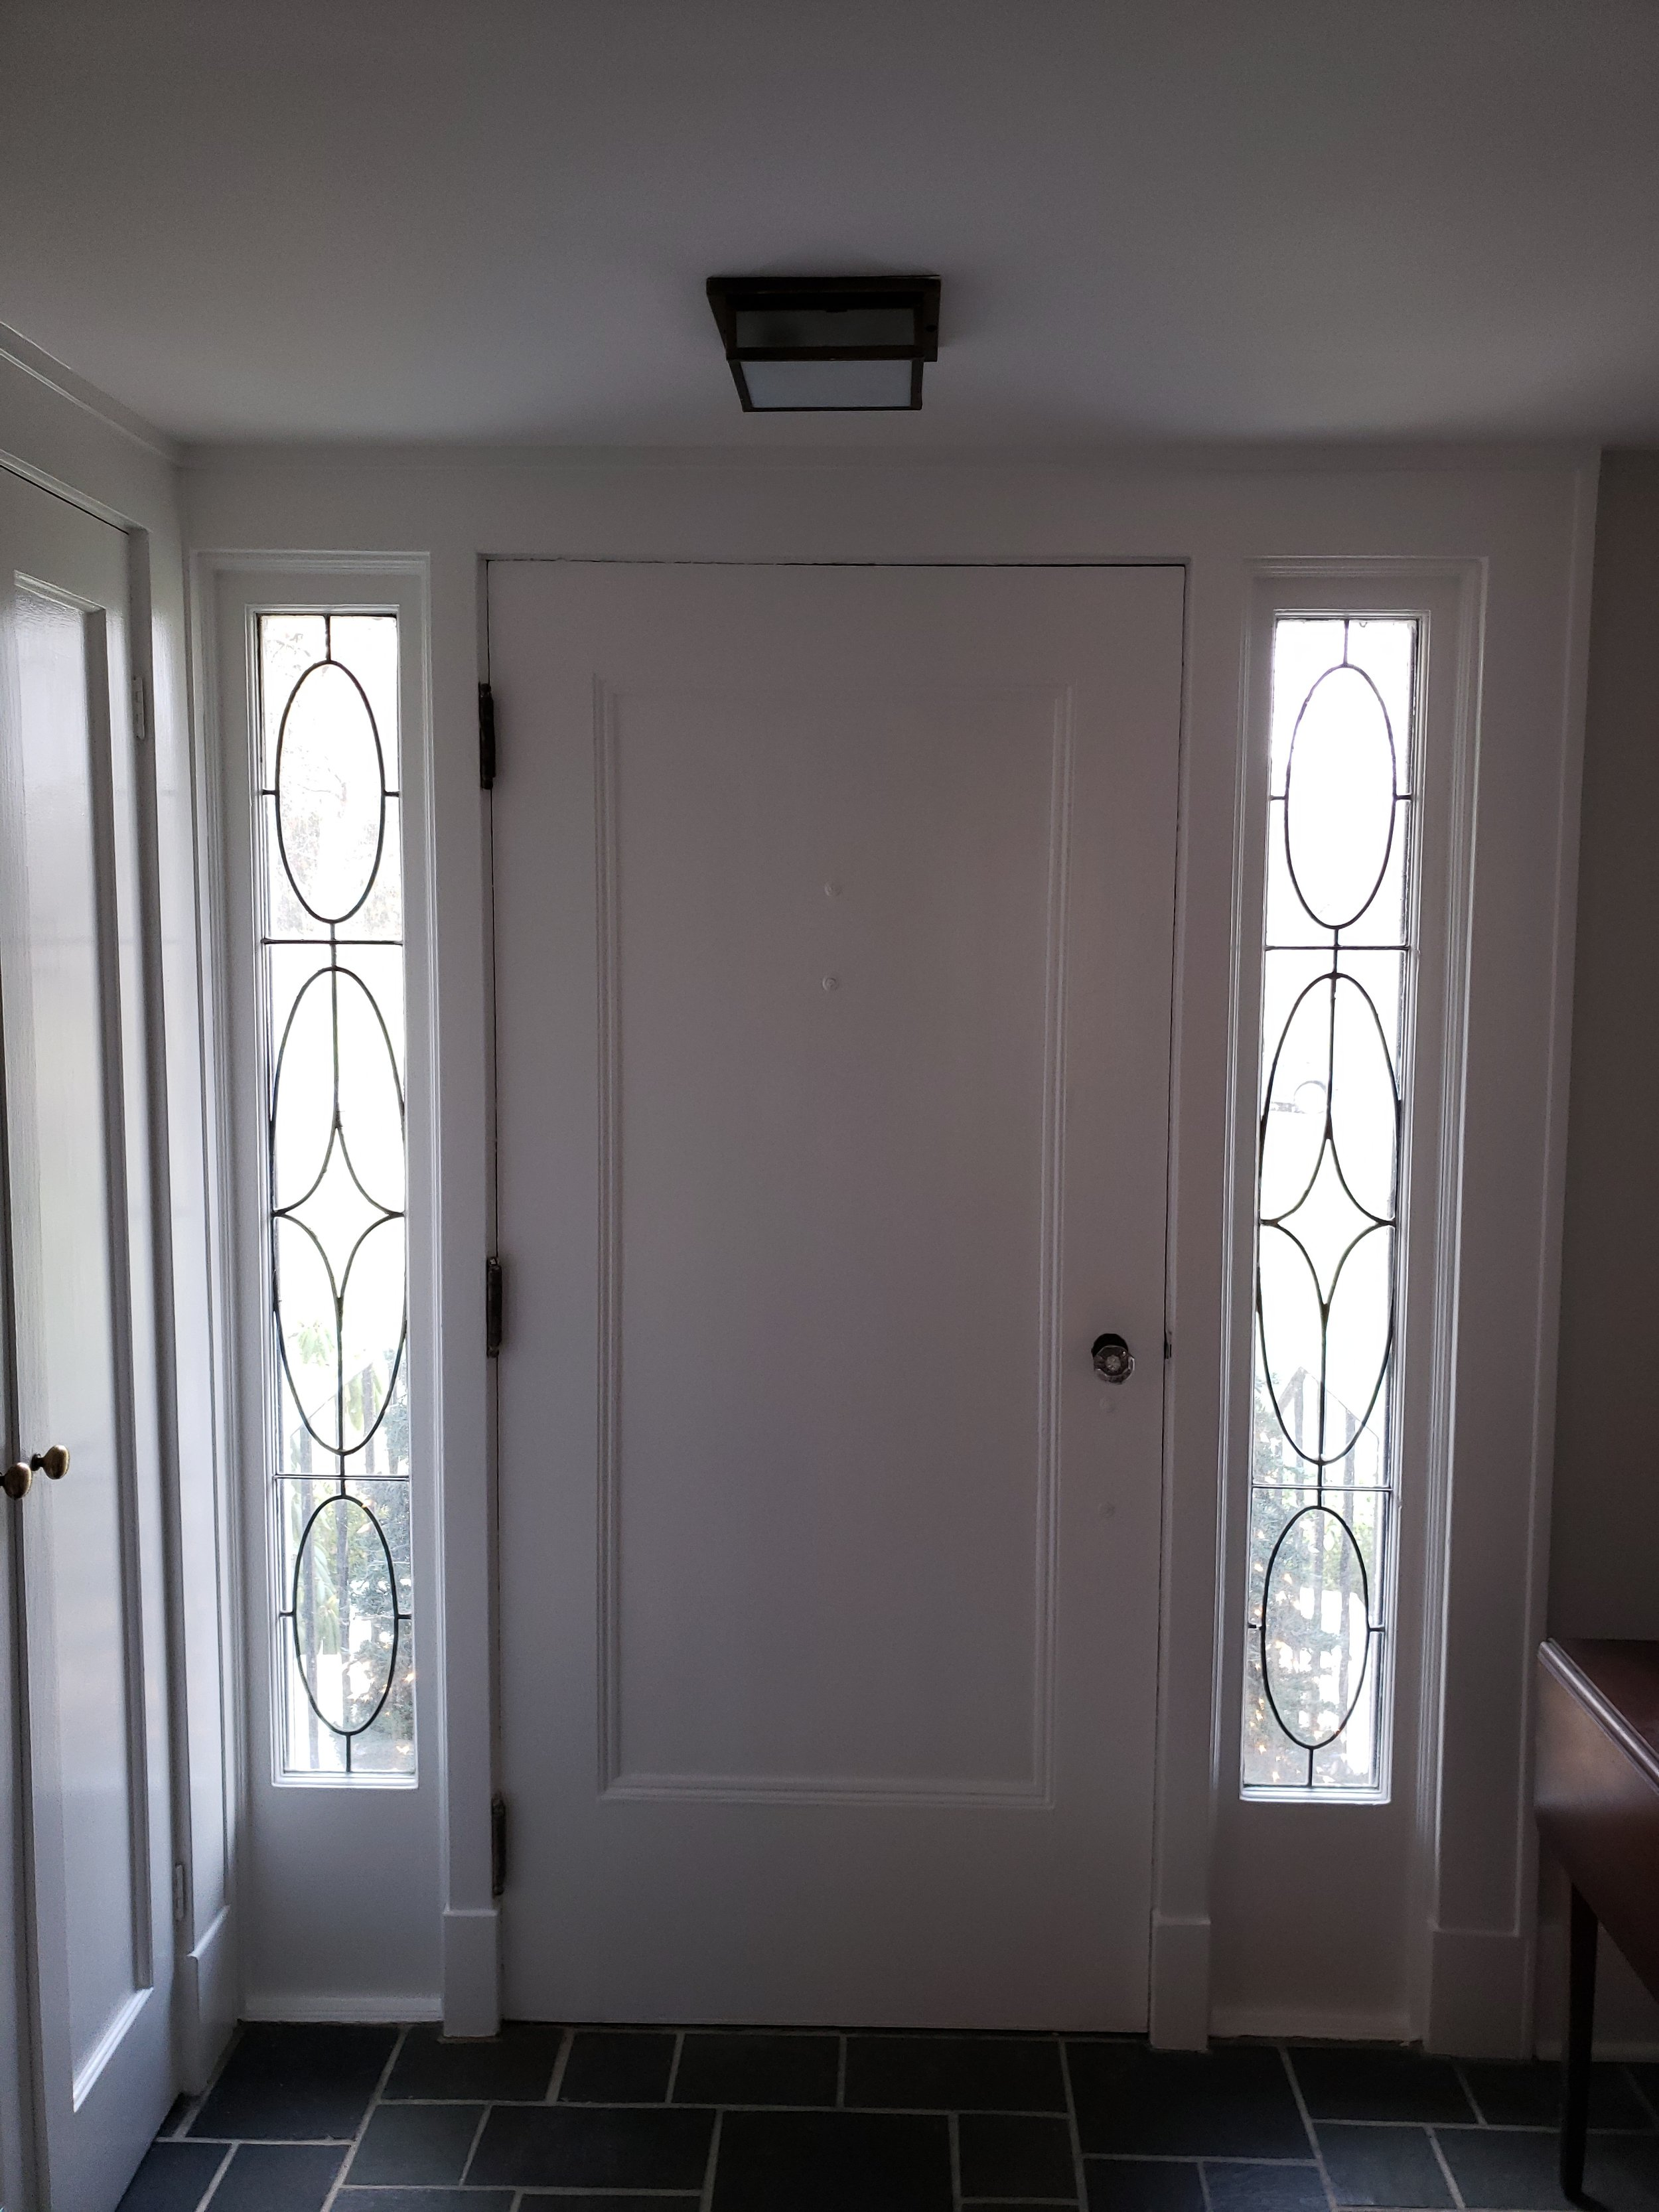 """"""" We were very happy with Josh's work. His attention to detail and his  preparation of surfaces before painting were meticulous. We would highly  recommend Stamp Paints. We would also hire them to do painting for us  in the future. """"   -Judith and Kimball S."""